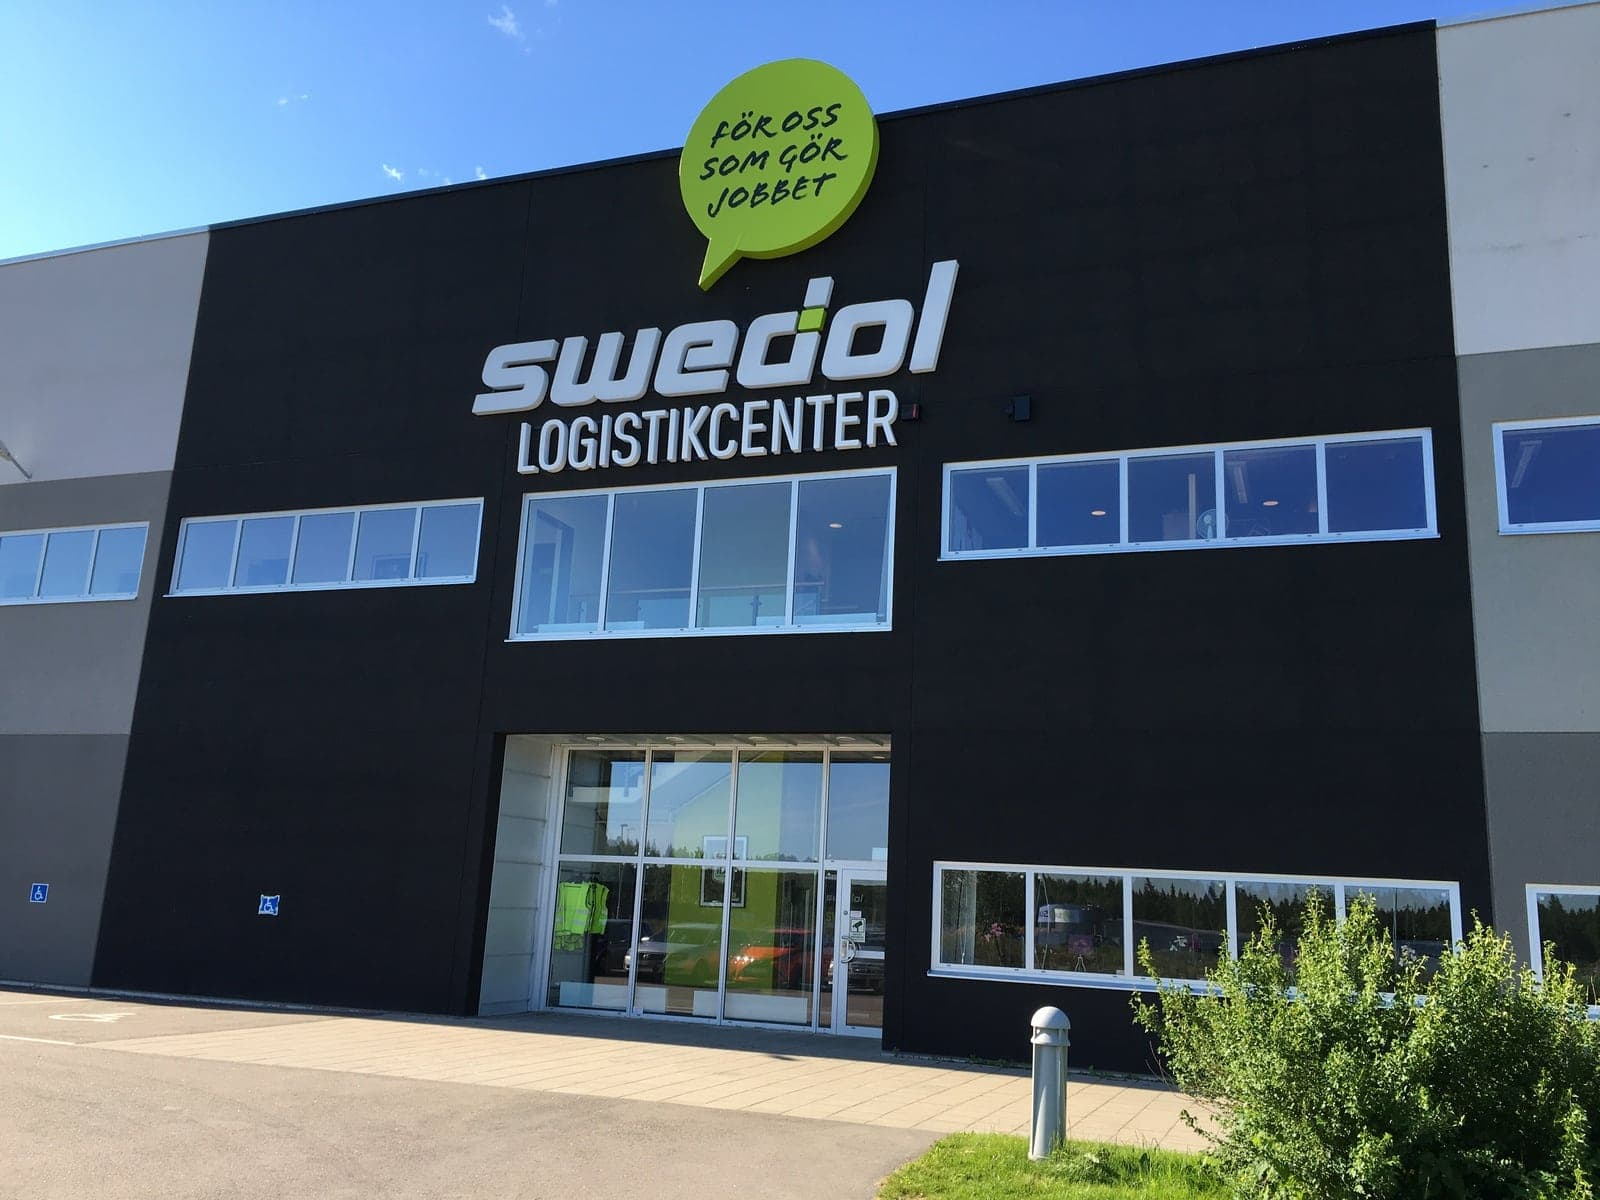 Swedol Logistikcenter